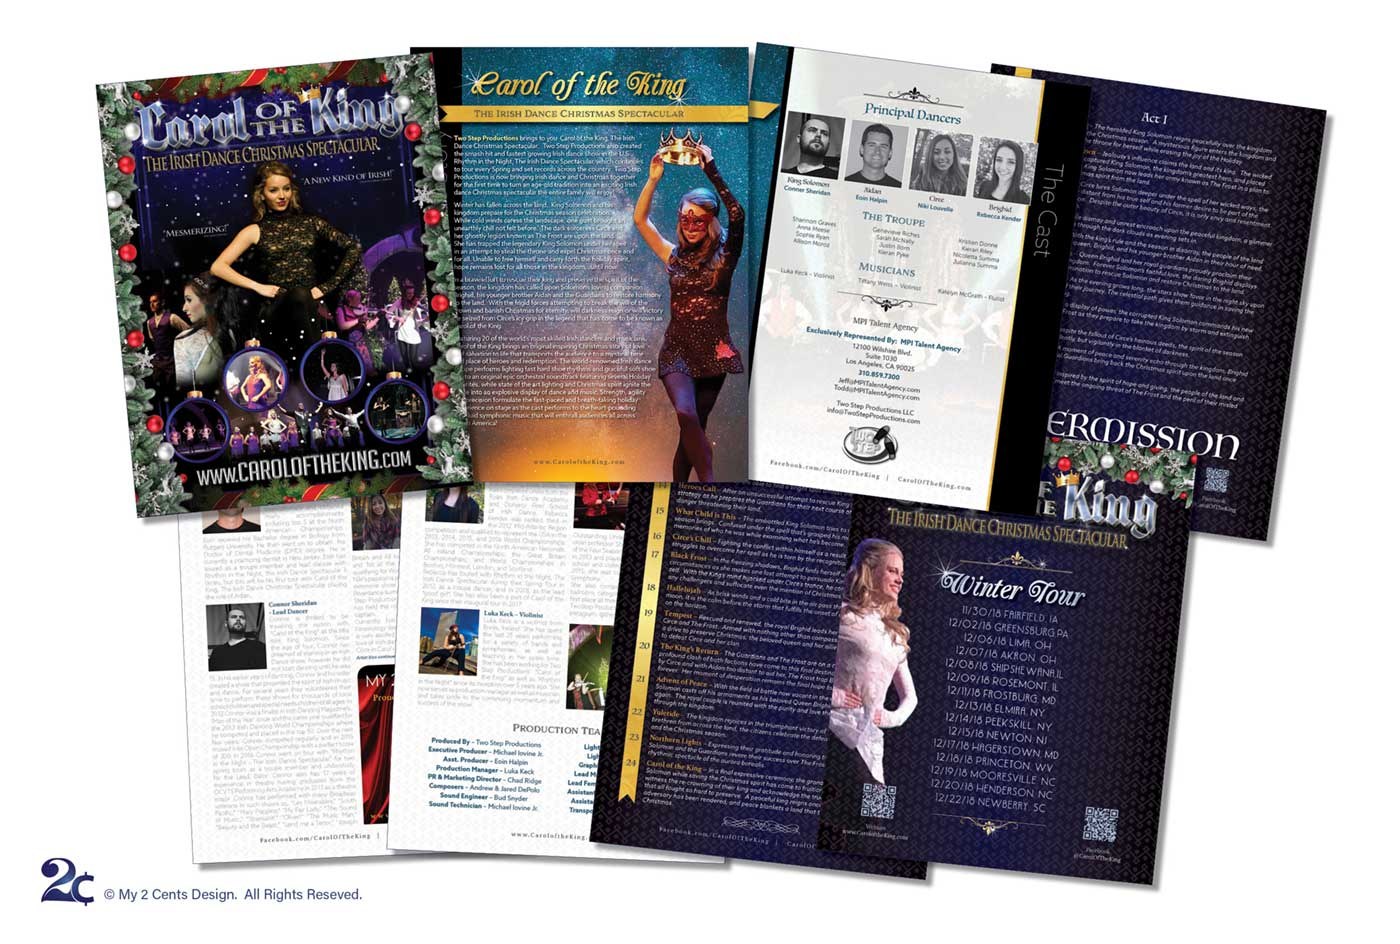 Professional Dance Performance Event Program Design